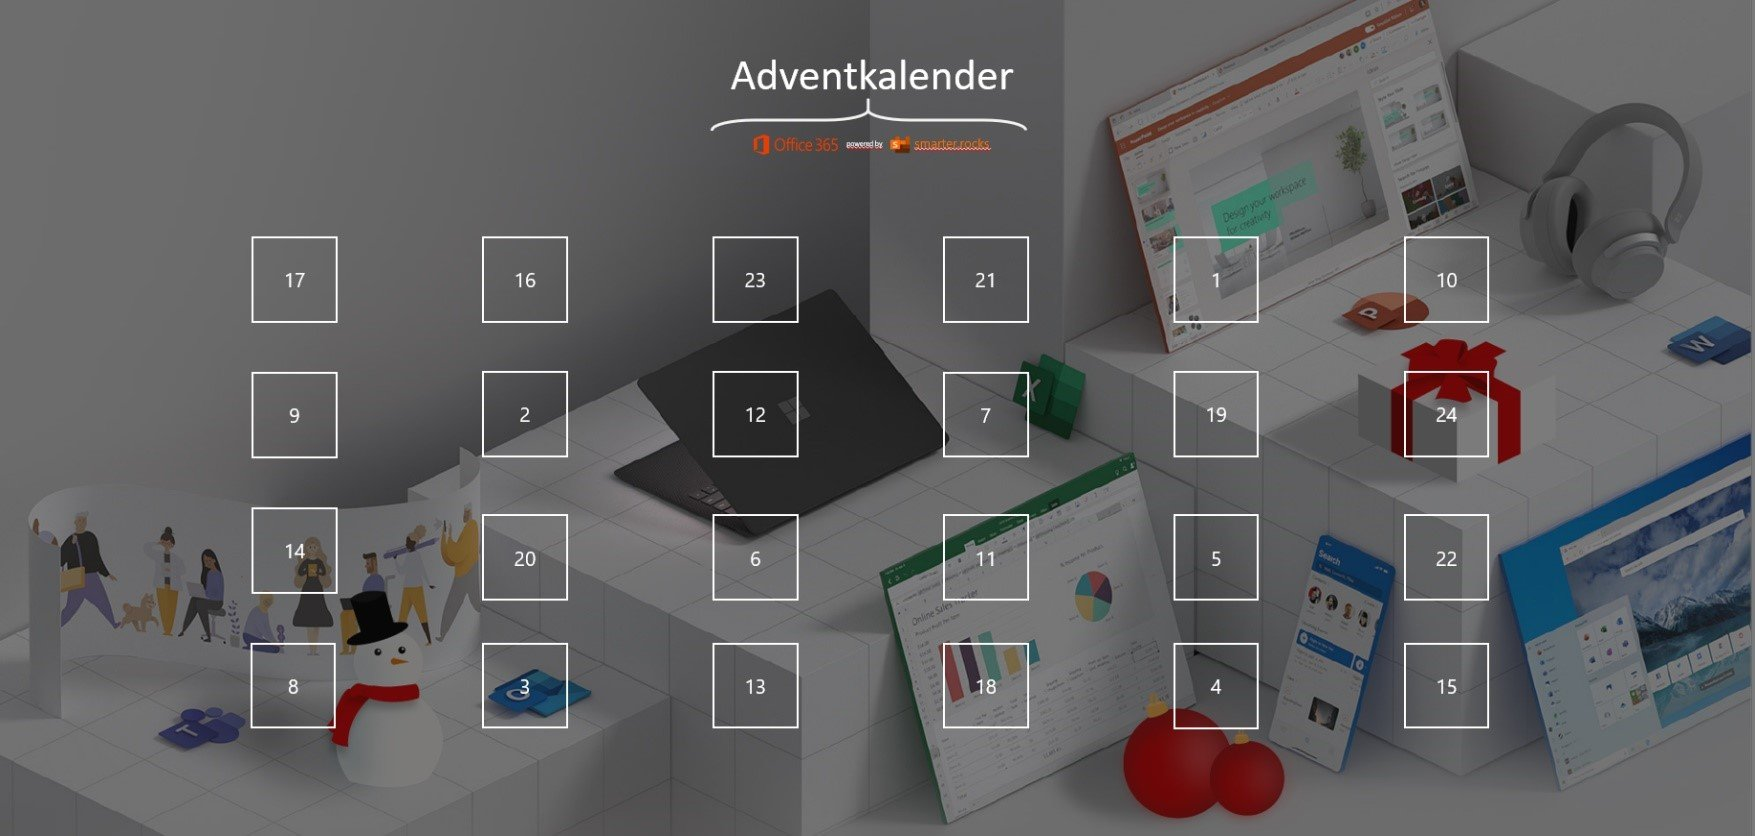 SharePoint Adventskalender